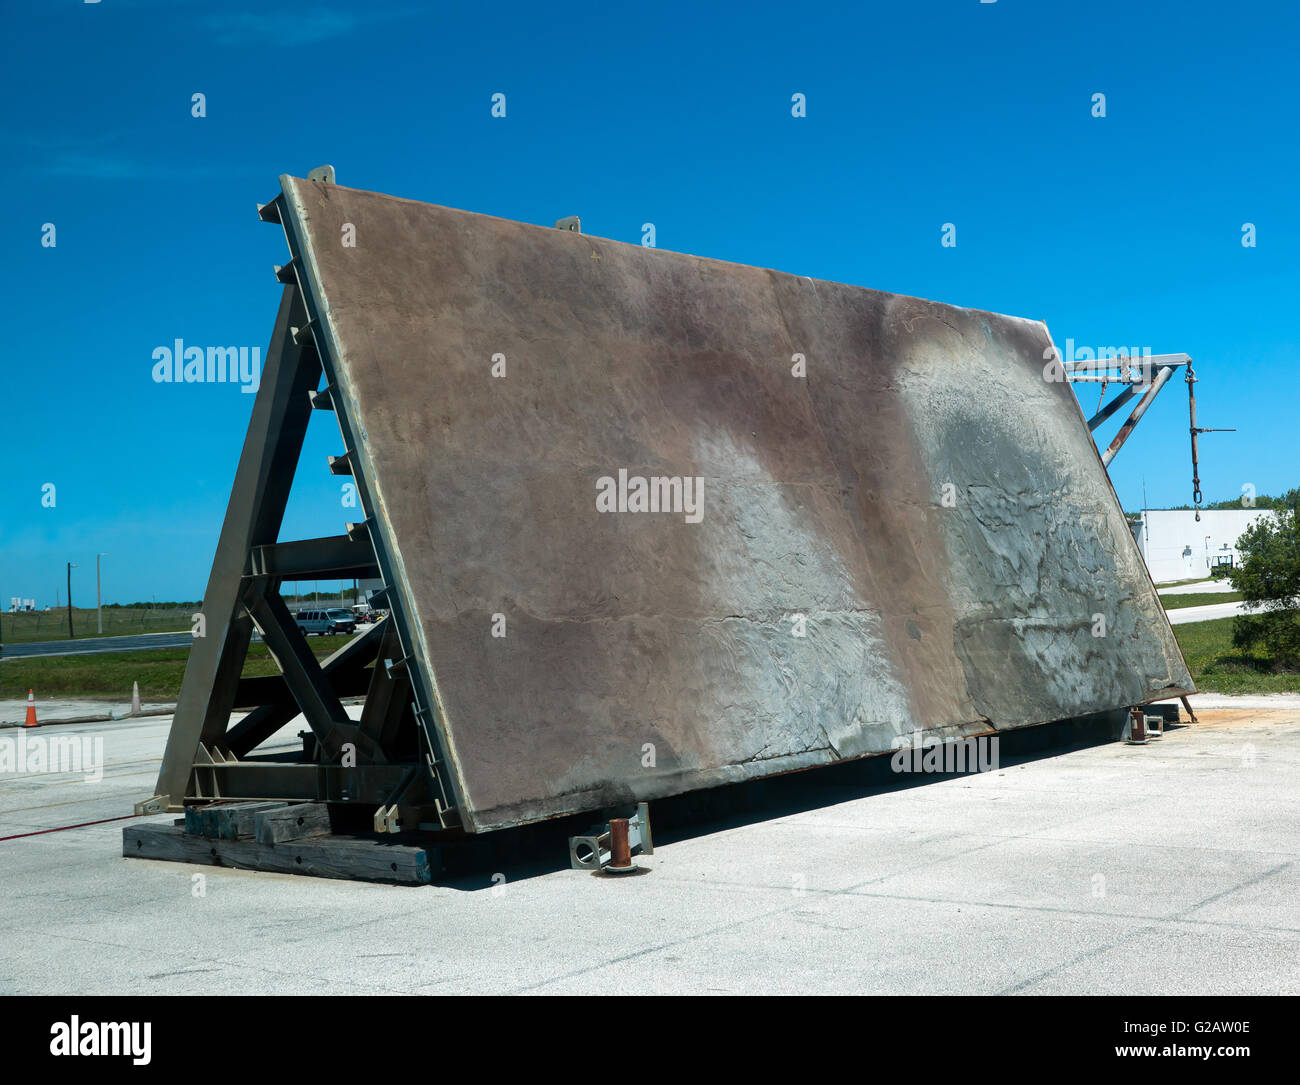 An Old Launch Pad Flame deflector at NASA's Kennedy Space Centre. - Stock Image